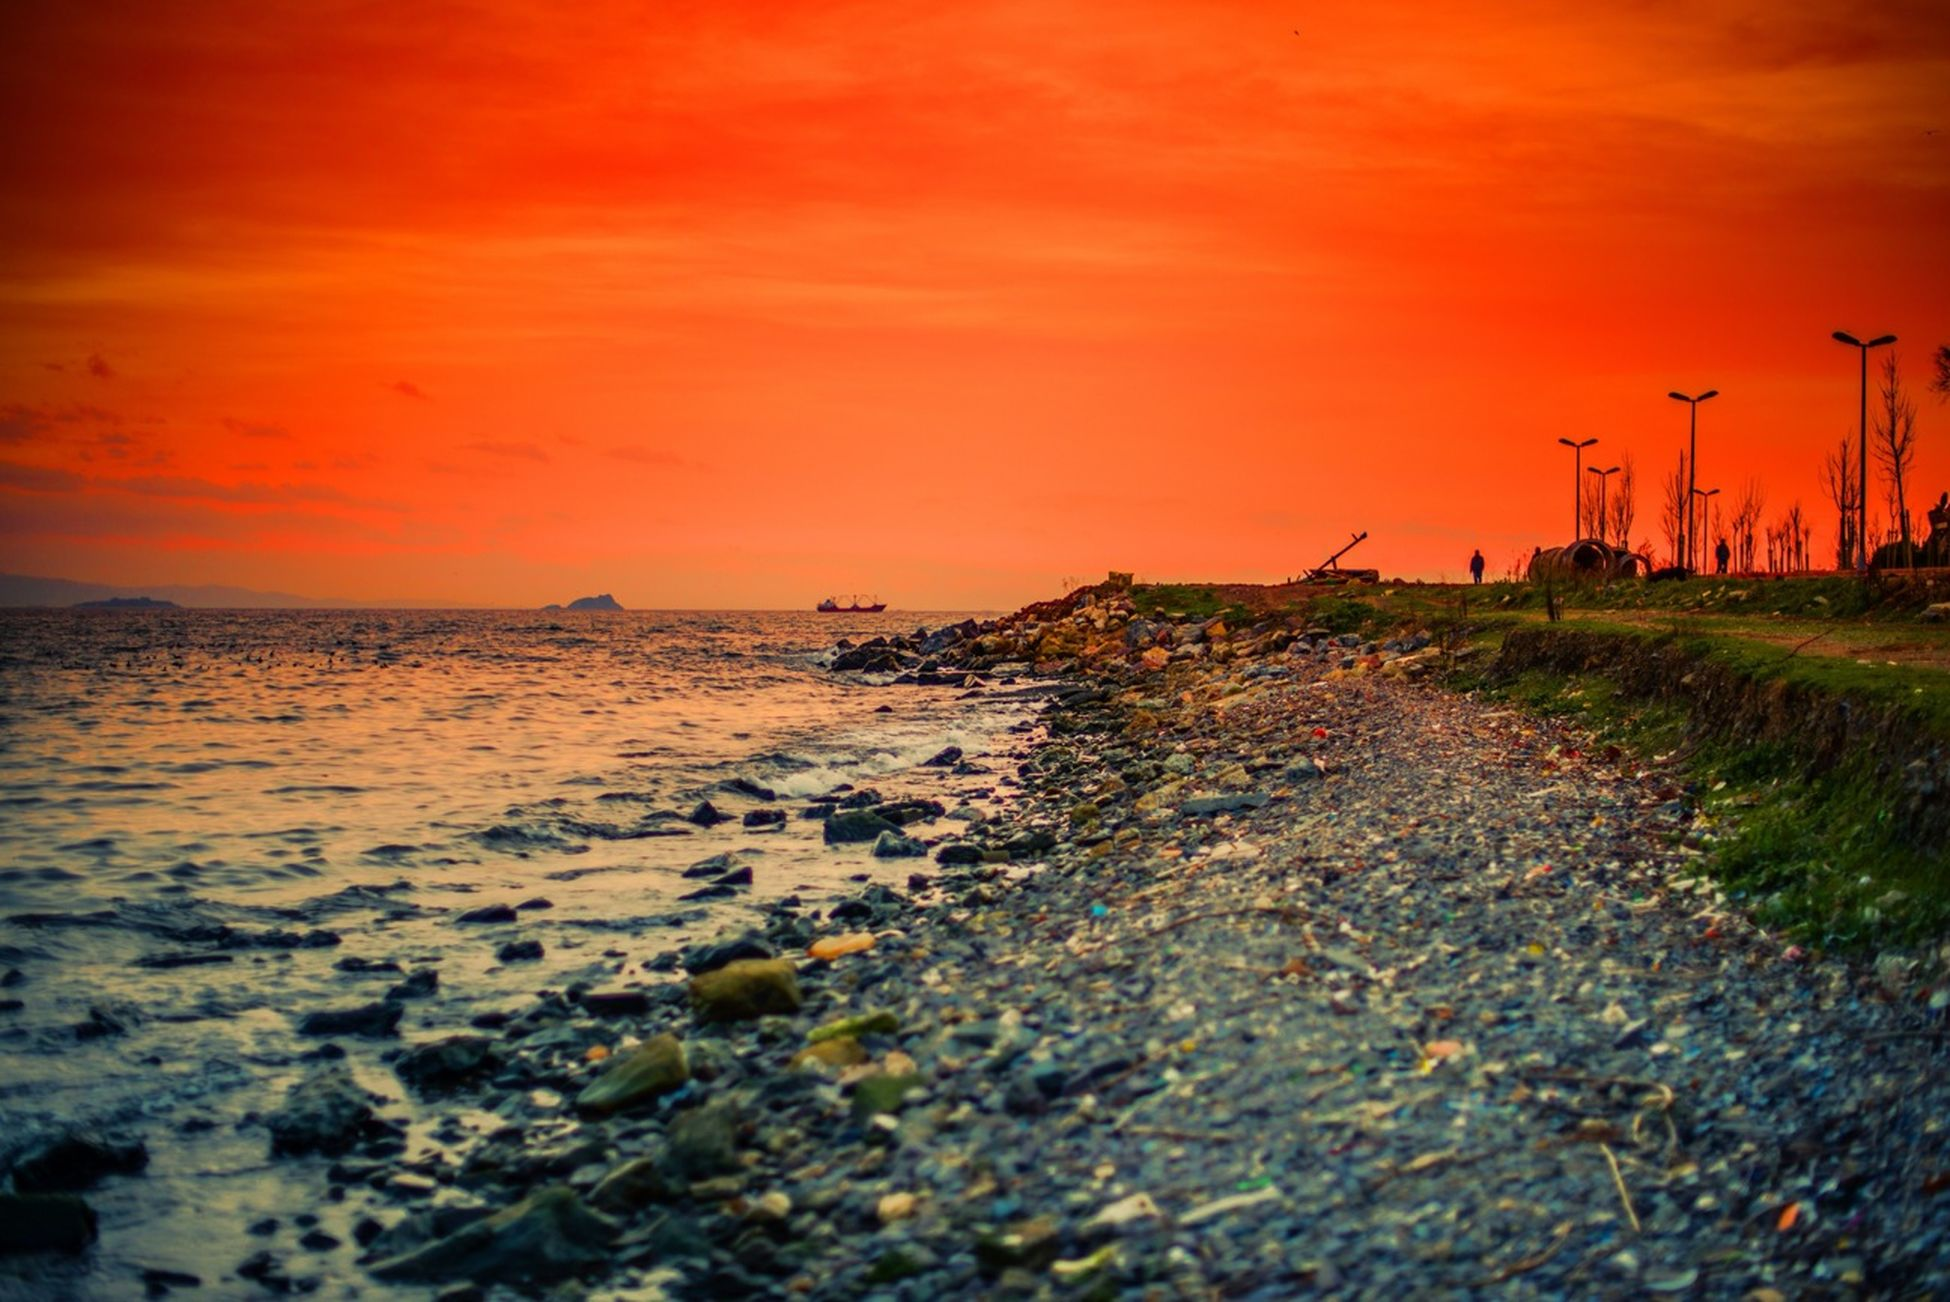 sunset, orange color, water, sea, scenics, tranquil scene, tranquility, sky, beauty in nature, beach, nature, idyllic, shore, horizon over water, outdoors, non-urban scene, remote, dusk, rock - object, no people